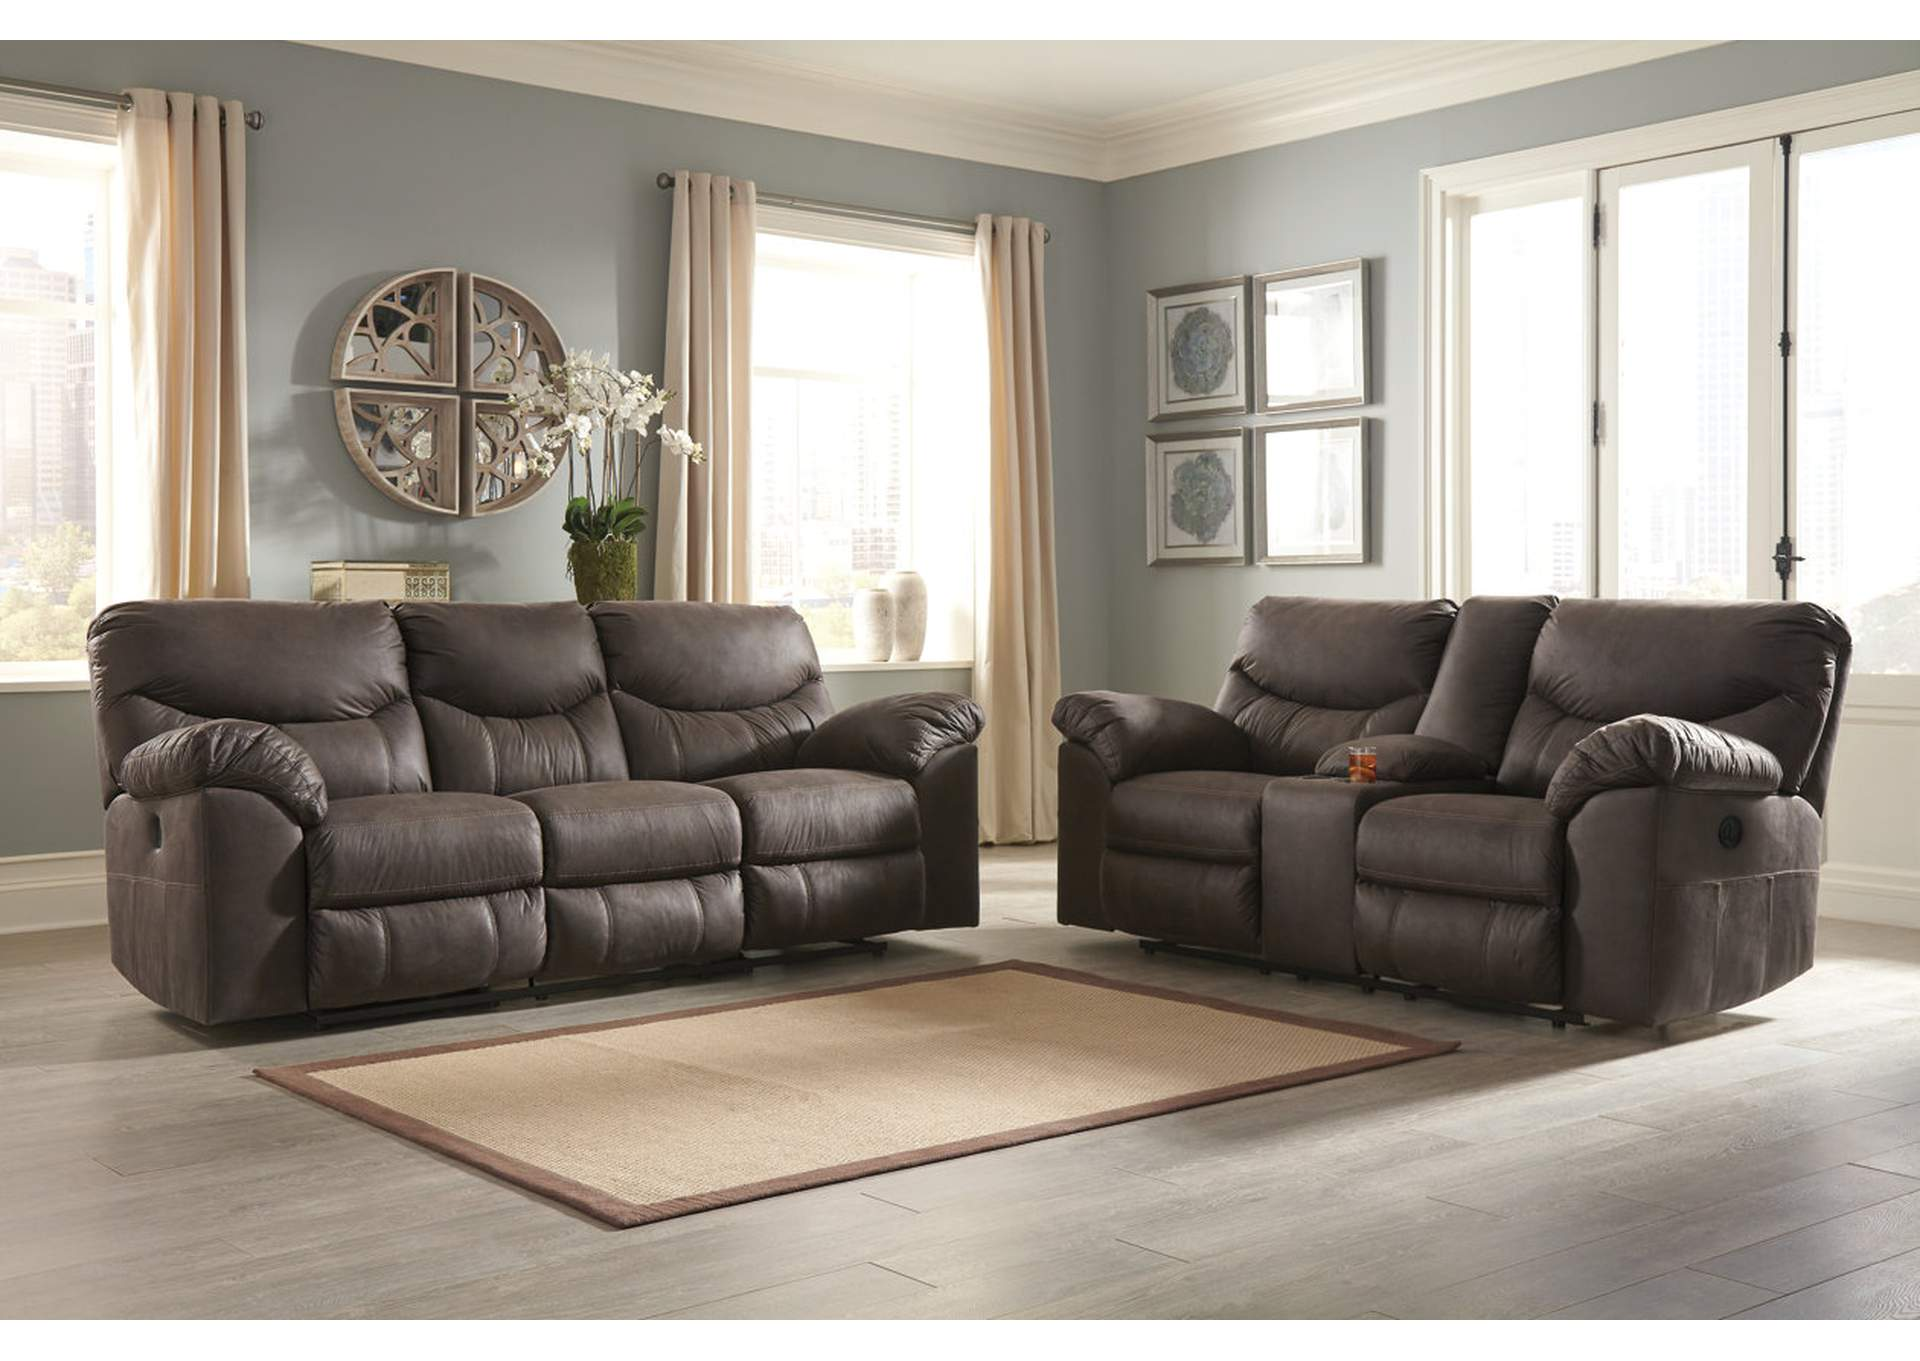 Boxberg Teak Reclining Power Sofa & Double Reclining Power Loveseat w/Console,Signature Design By Ashley